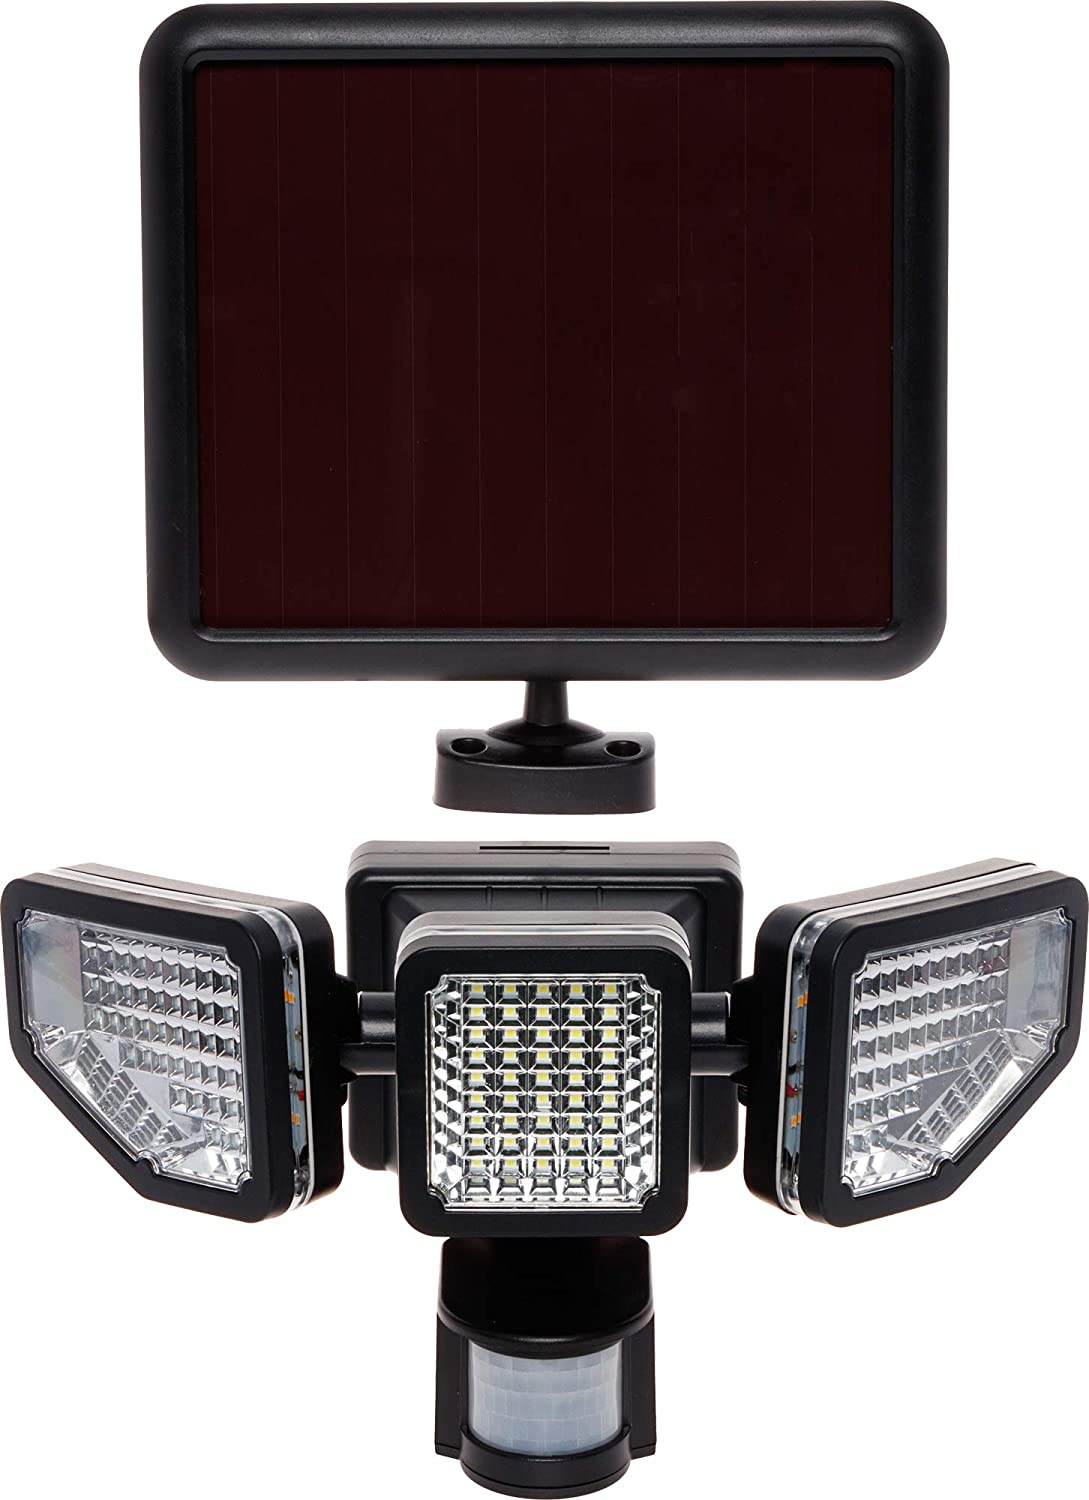 GreenLighting Corner Mount 1200 Lumen Triple Head PIR Solar Security Flood Light w Motion Sensor Clear Lens